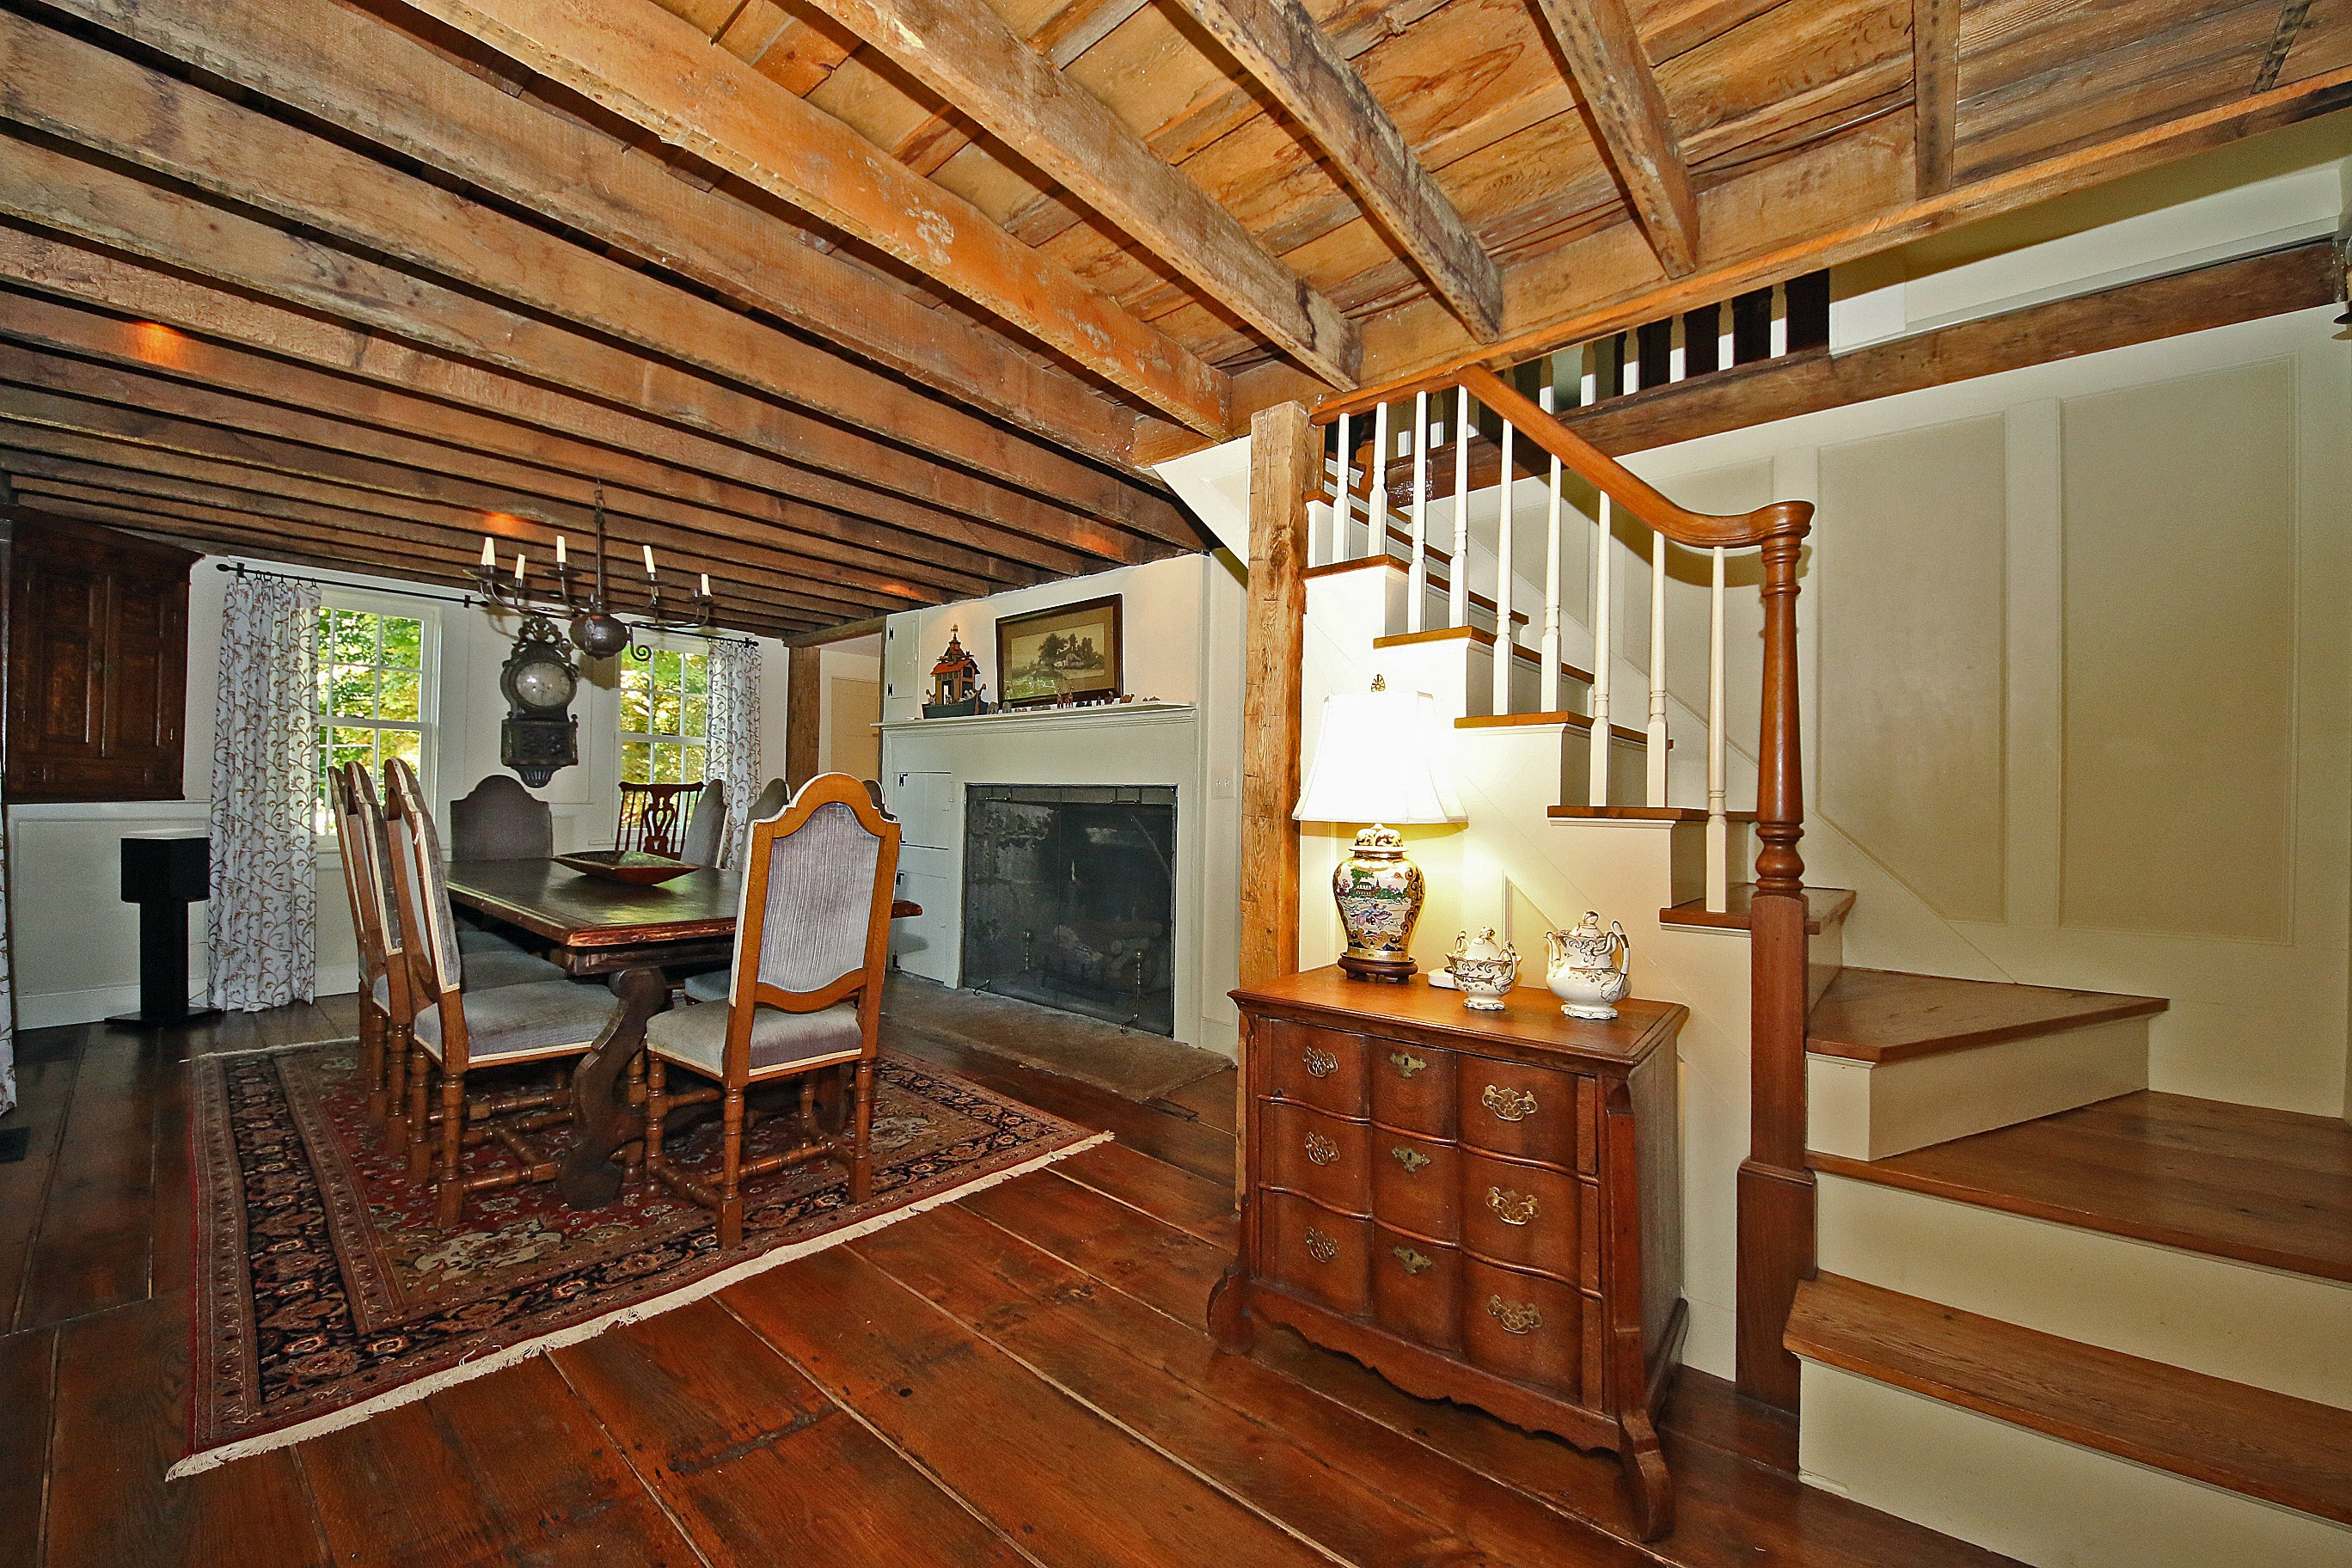 Additional photo for property listing at A Magnificent Homestead 306 Wilton Road West Ridgefield, Connecticut 06877 United States